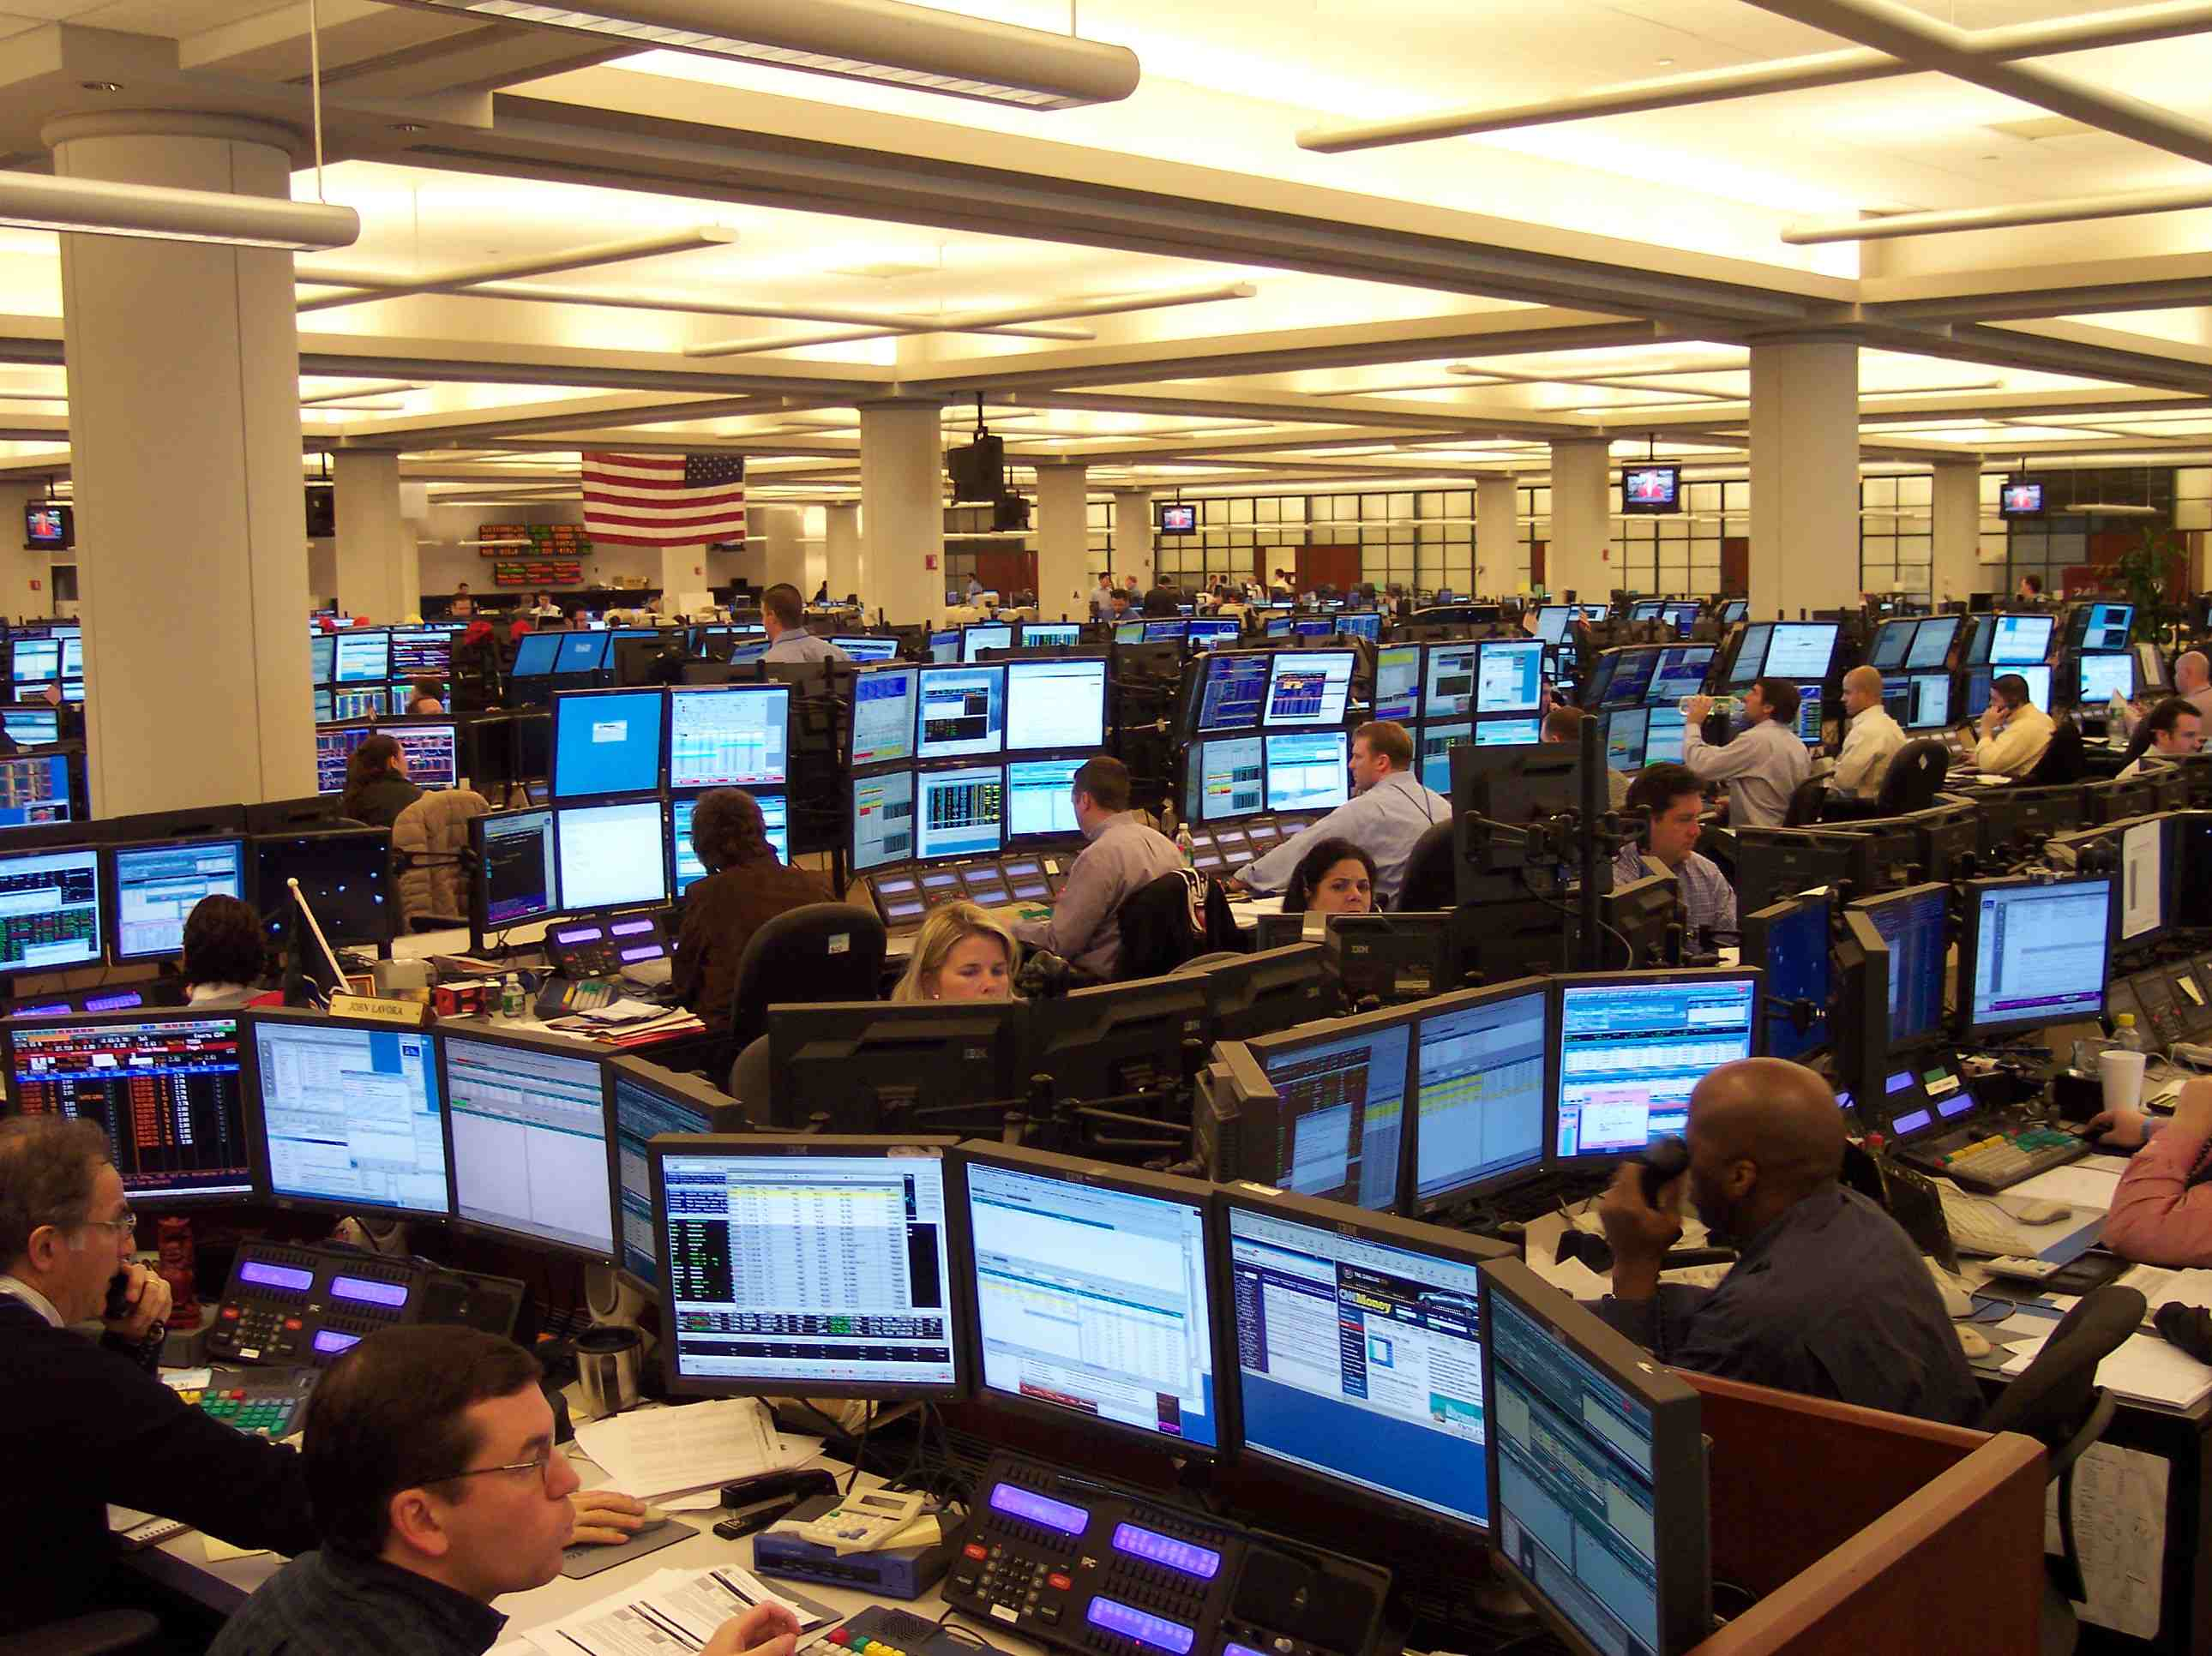 File A1 Houston Office Oil Traders On Monday Jpg